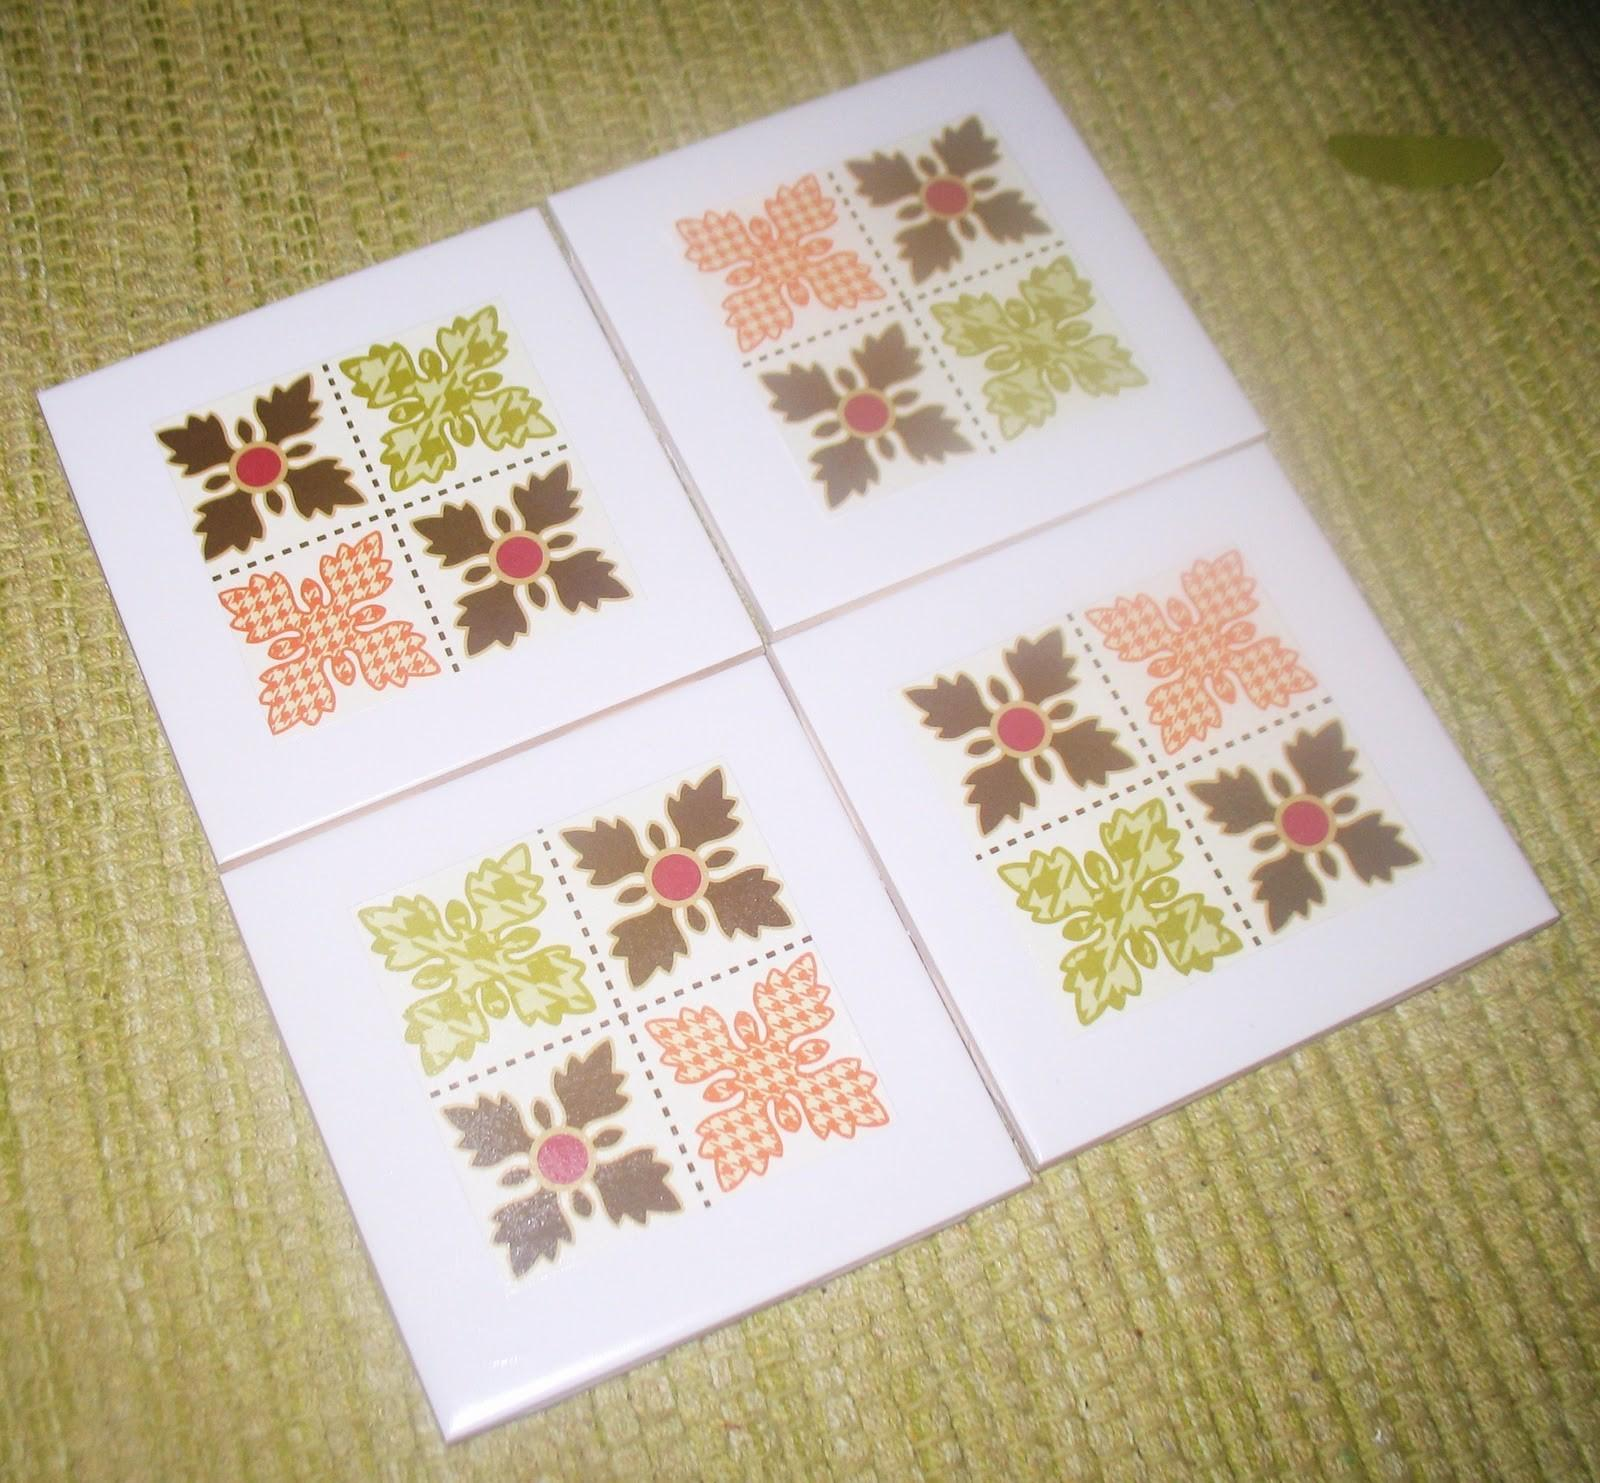 Diy Projects Homemade Coasters